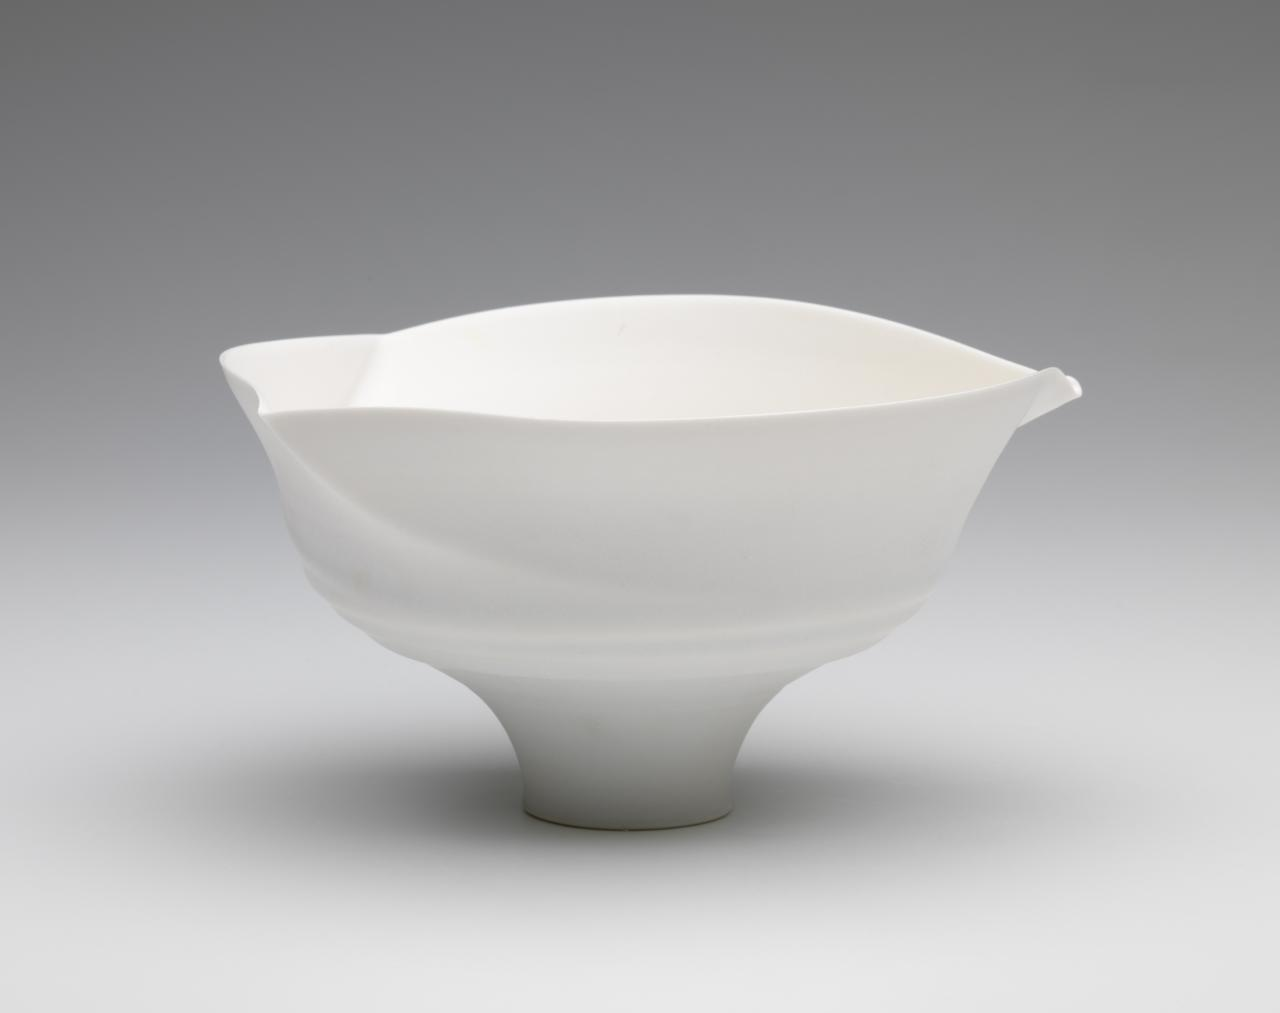 Spiral lipped bowl with white glaze